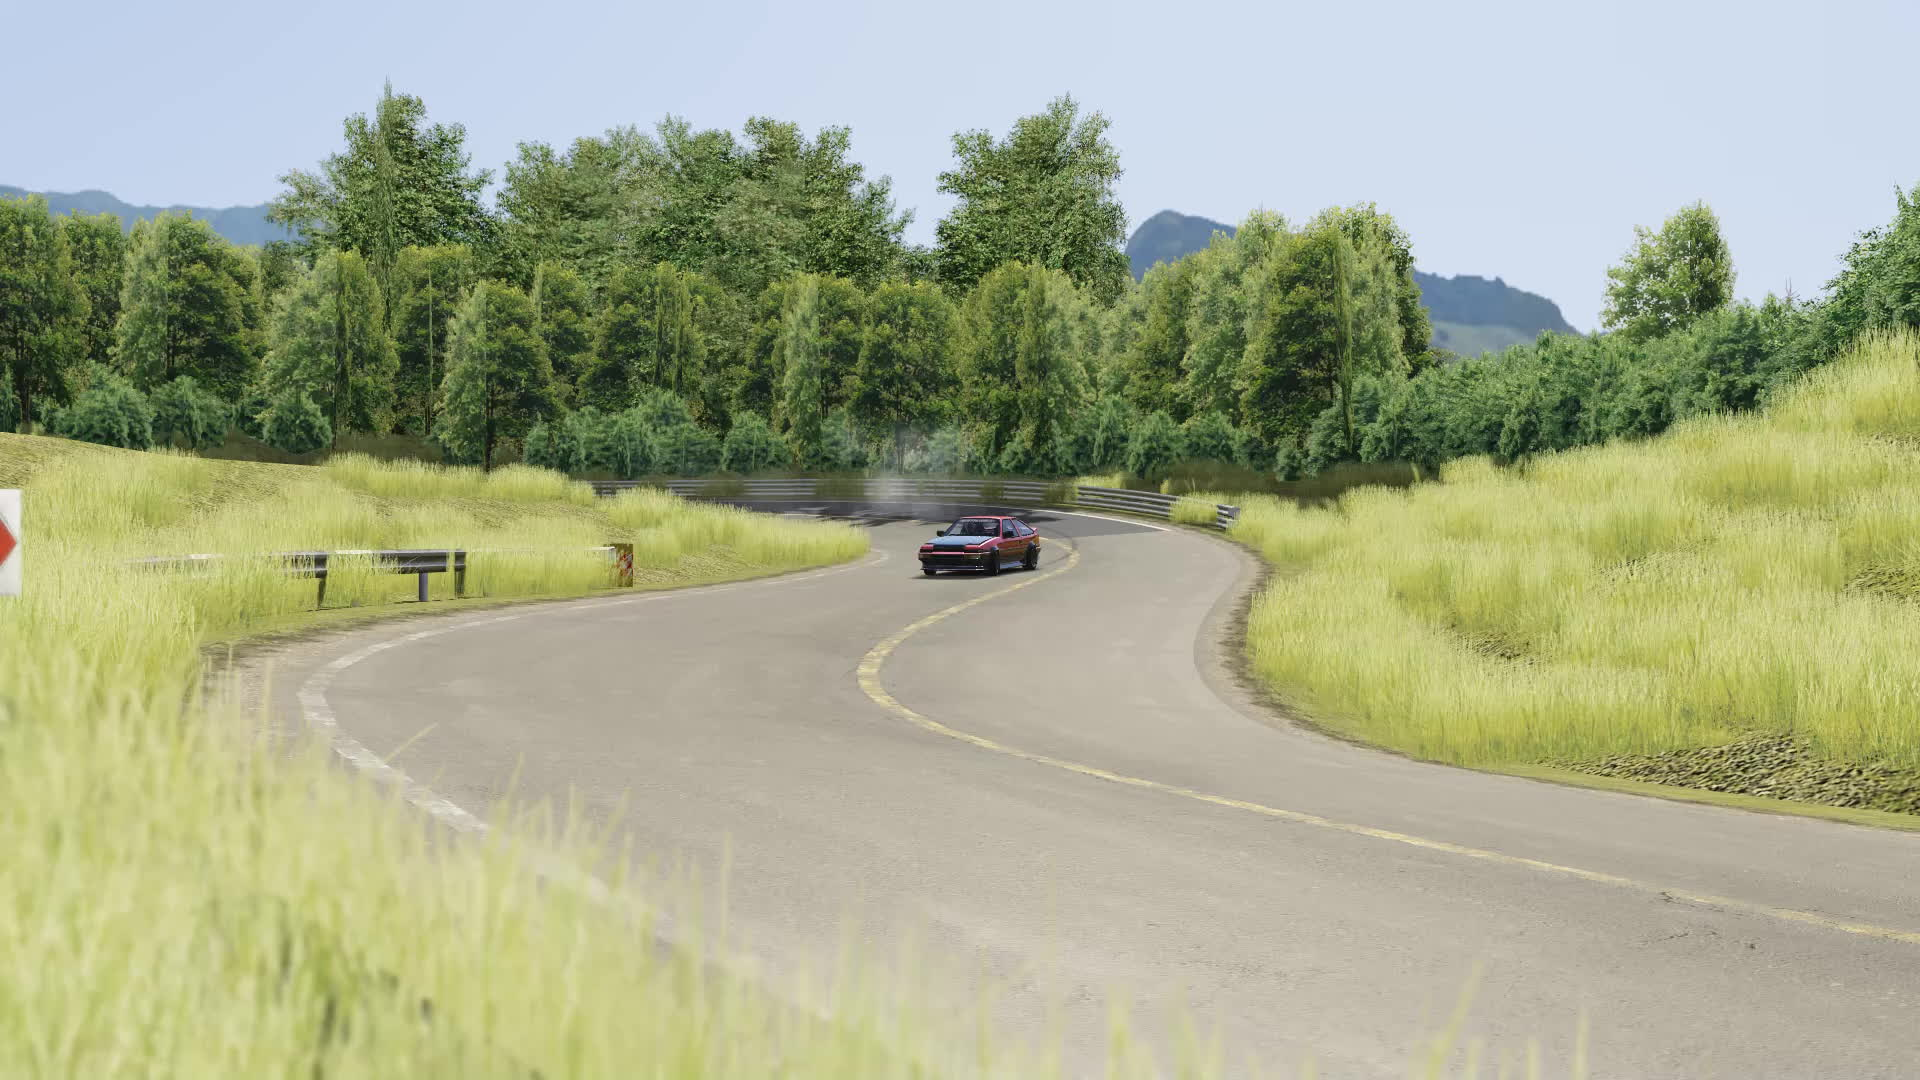 Assetto Corsa - AE86 on the outer lane GIFs